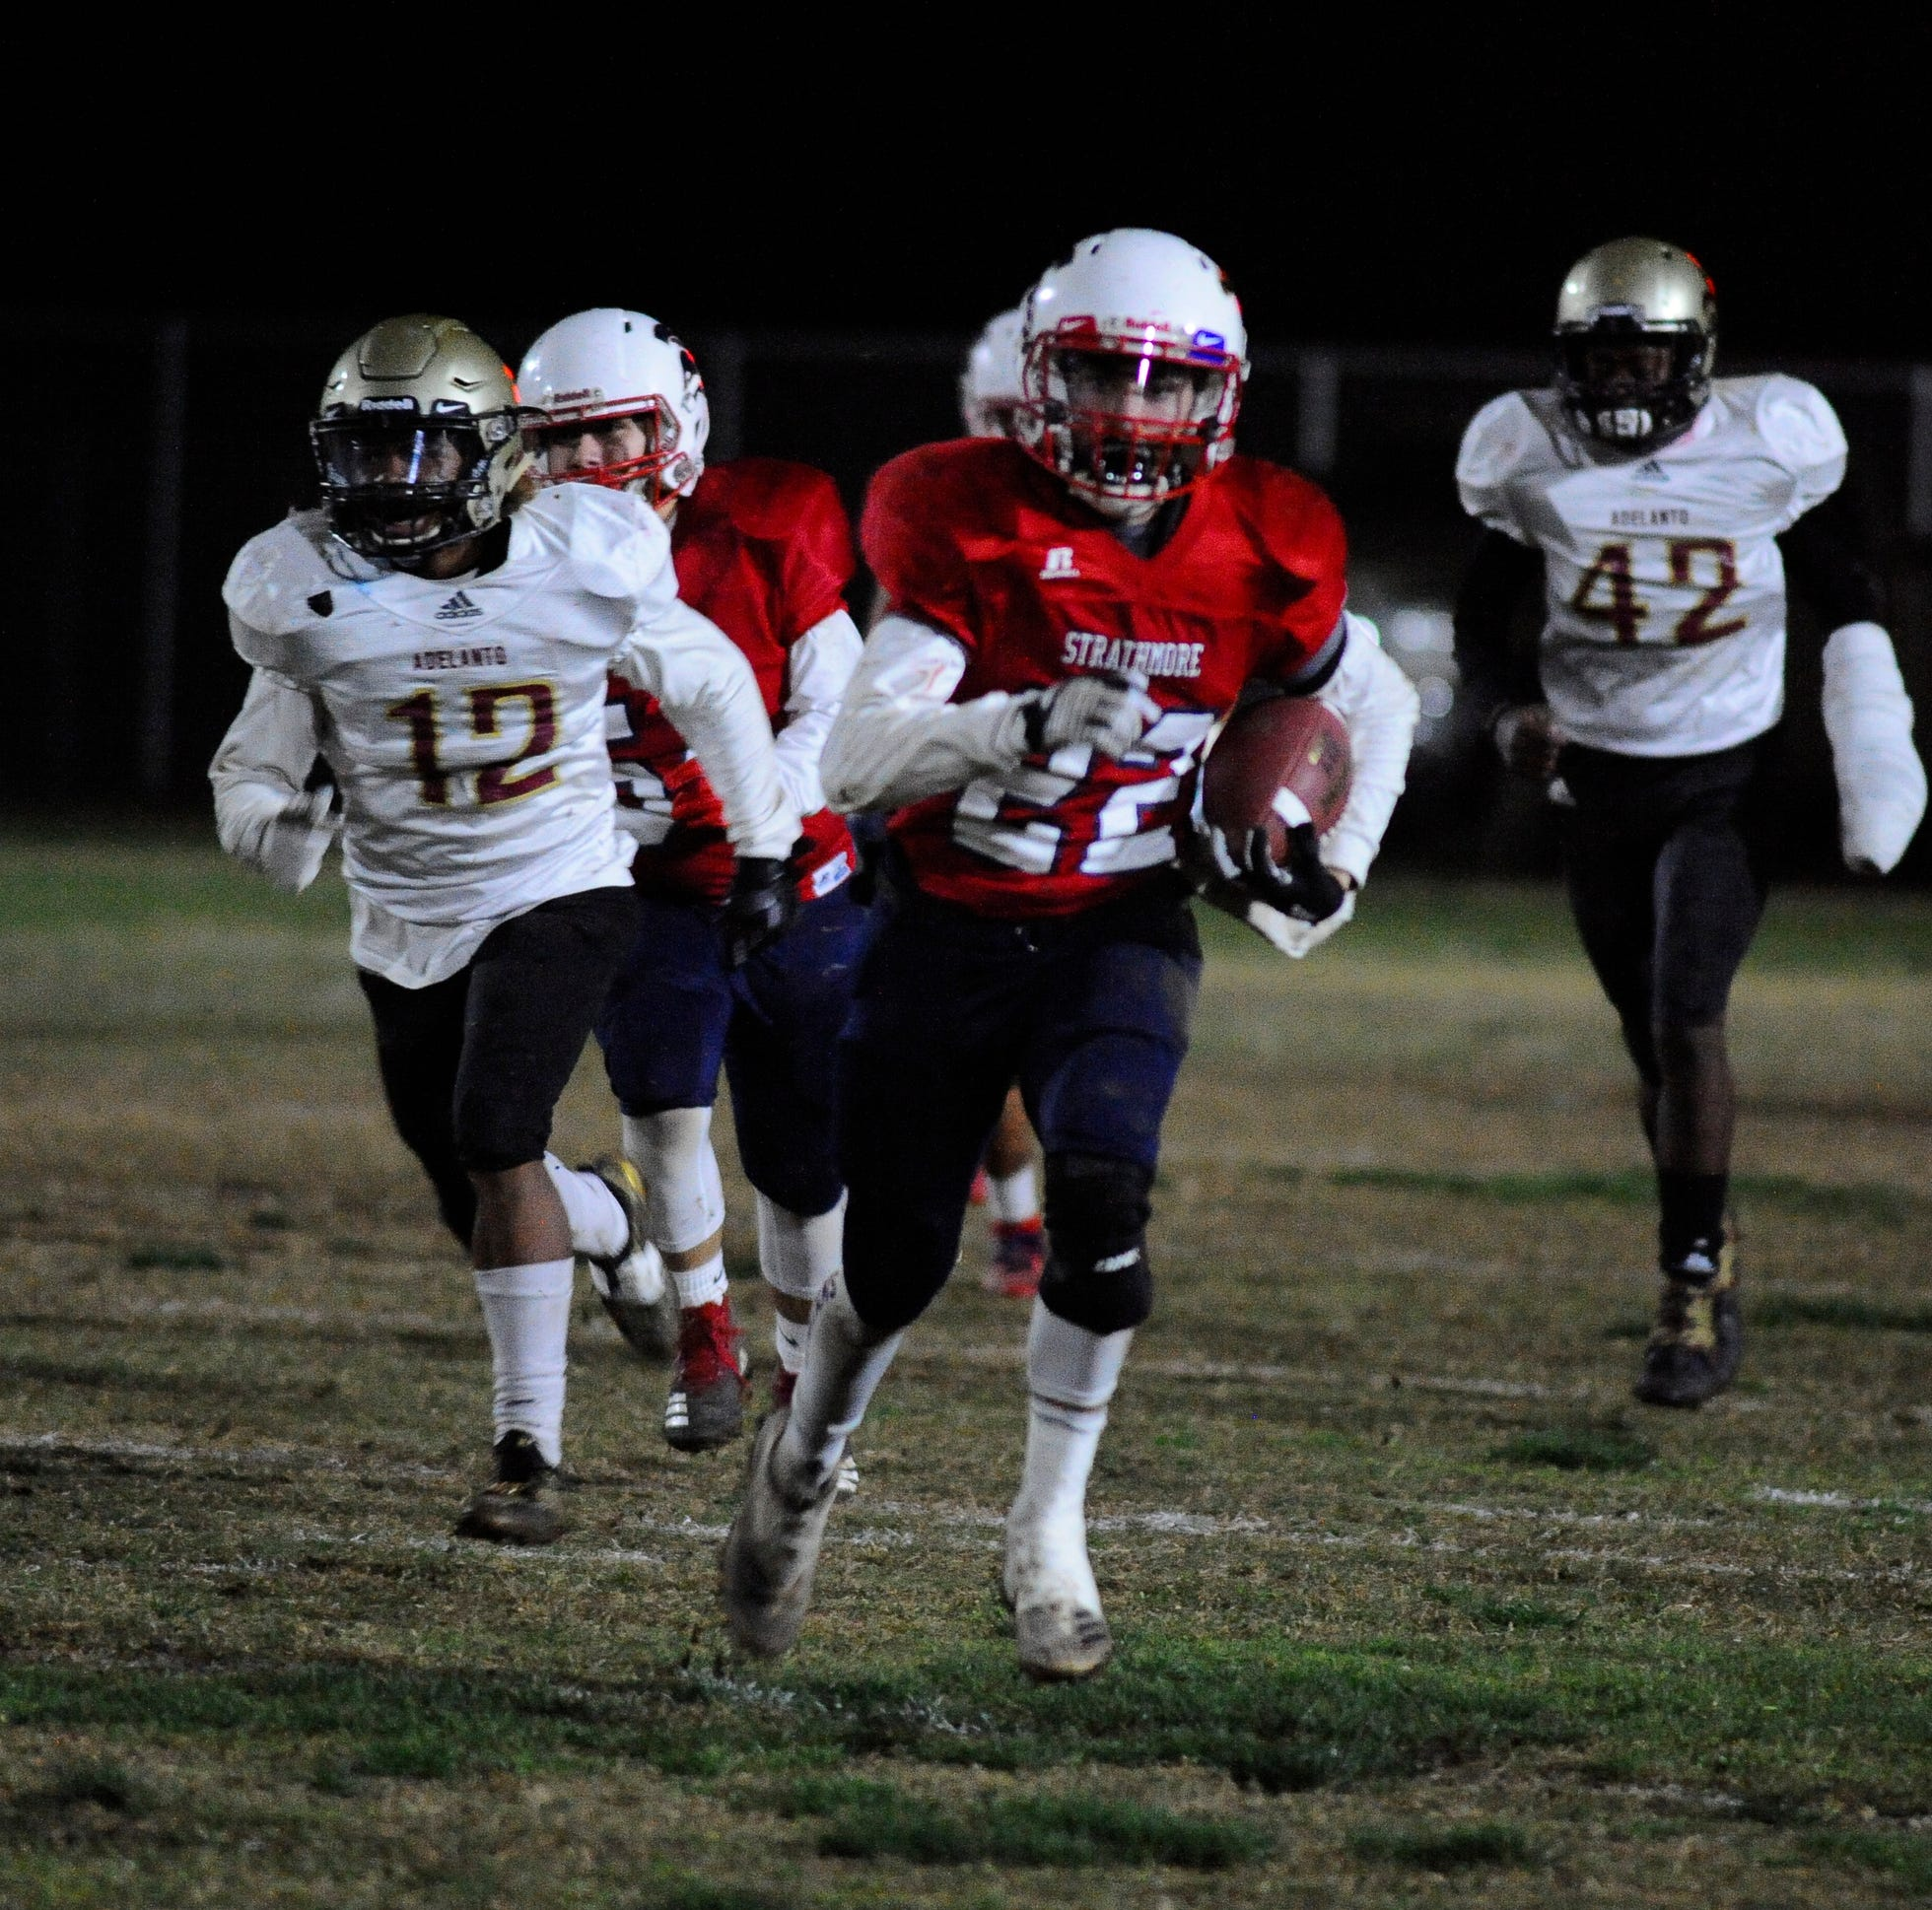 This Strathmore RB was asked to replace a 6,000-yard rusher. He responded by scoring 34 TDs.